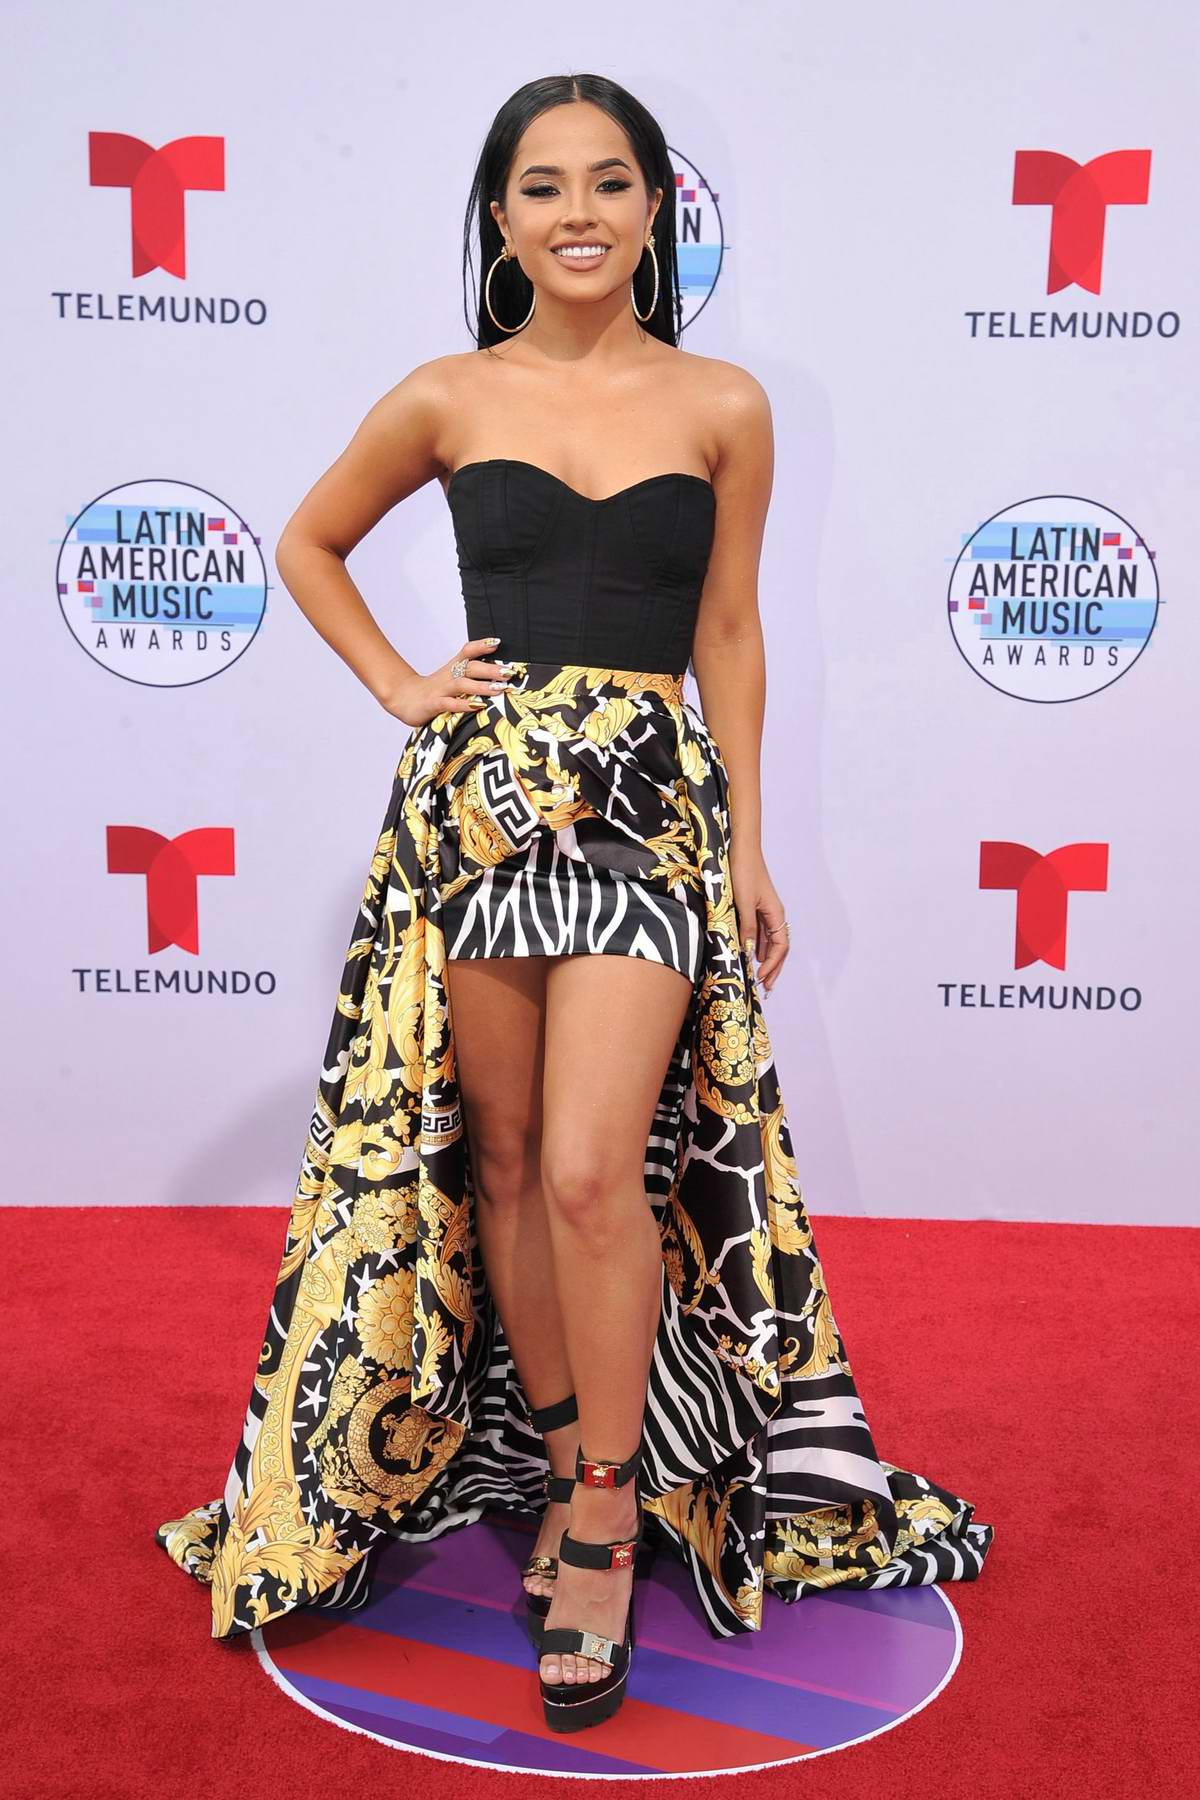 Becky G attends the Latin American Music Awards 2019 at Dolby Theatre in Hollywood, California